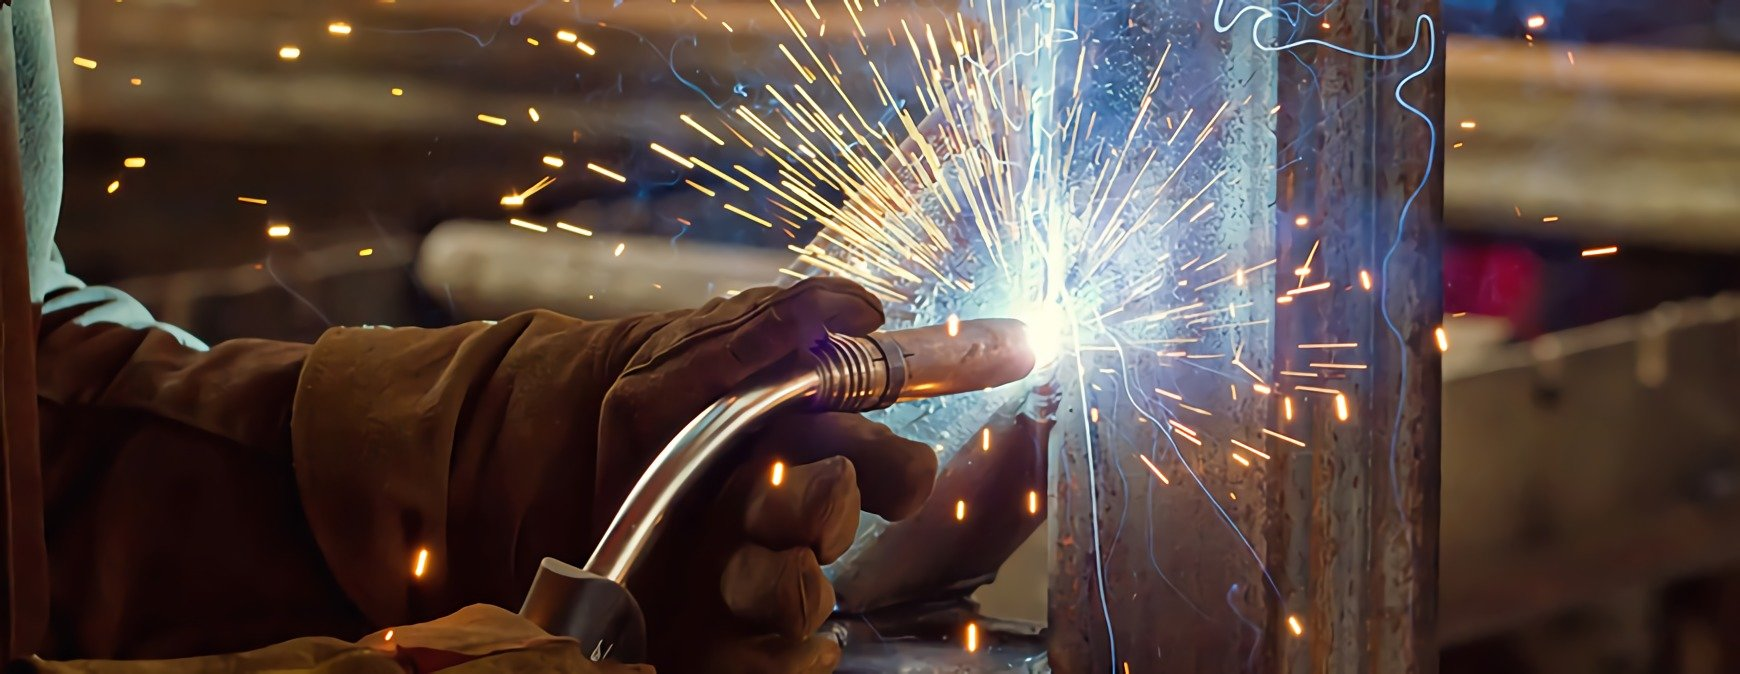 welding skilled trade